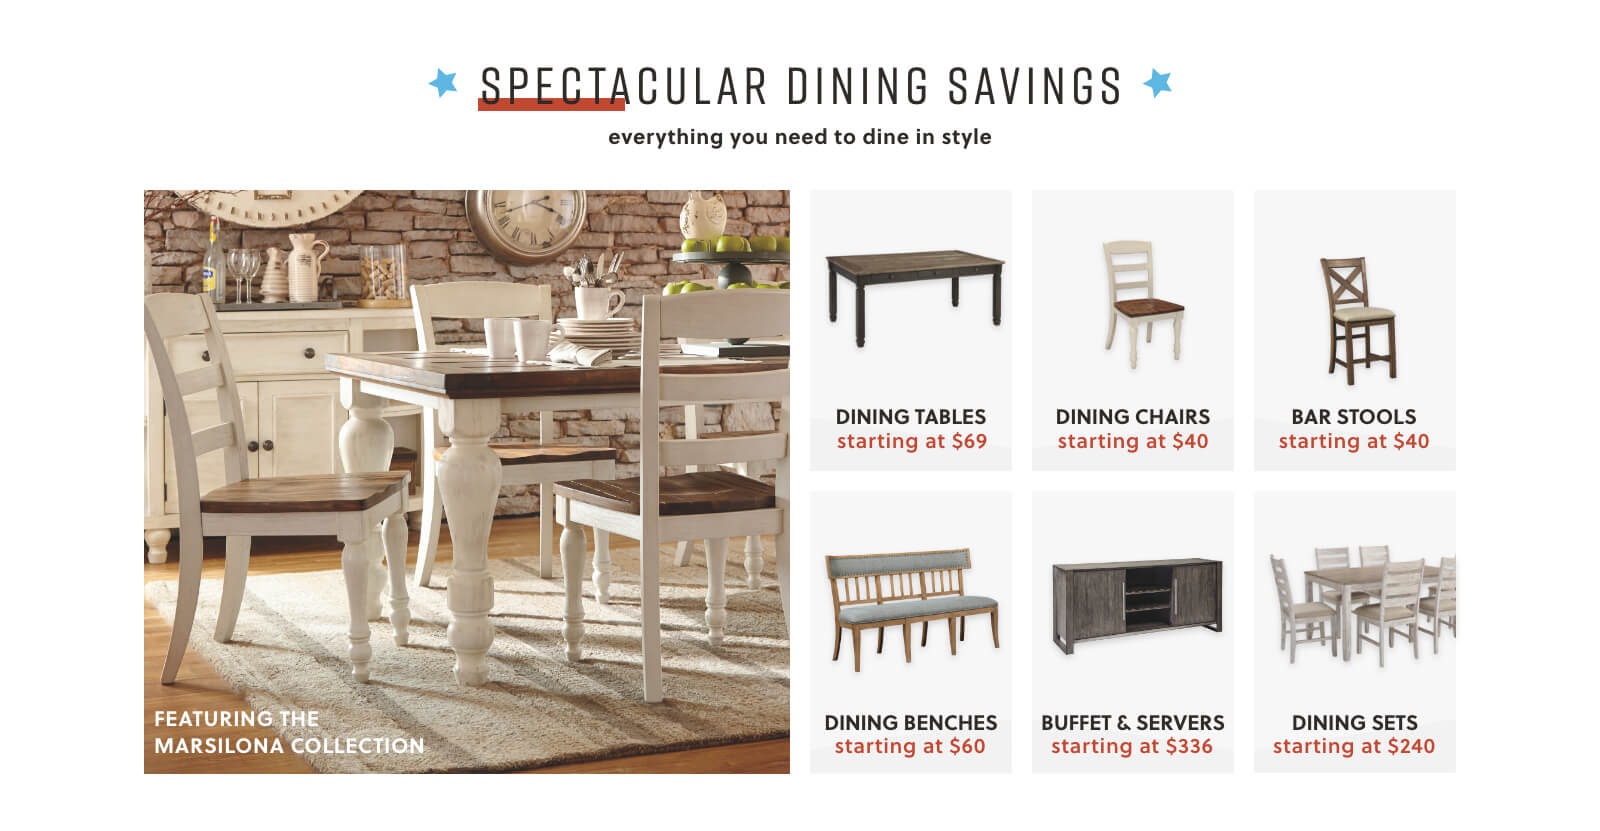 Bolanburg Collection, Dining Tables, Dining Chairs, Bar Stools, Dining Benches, Buffet Servers, Dining Sets